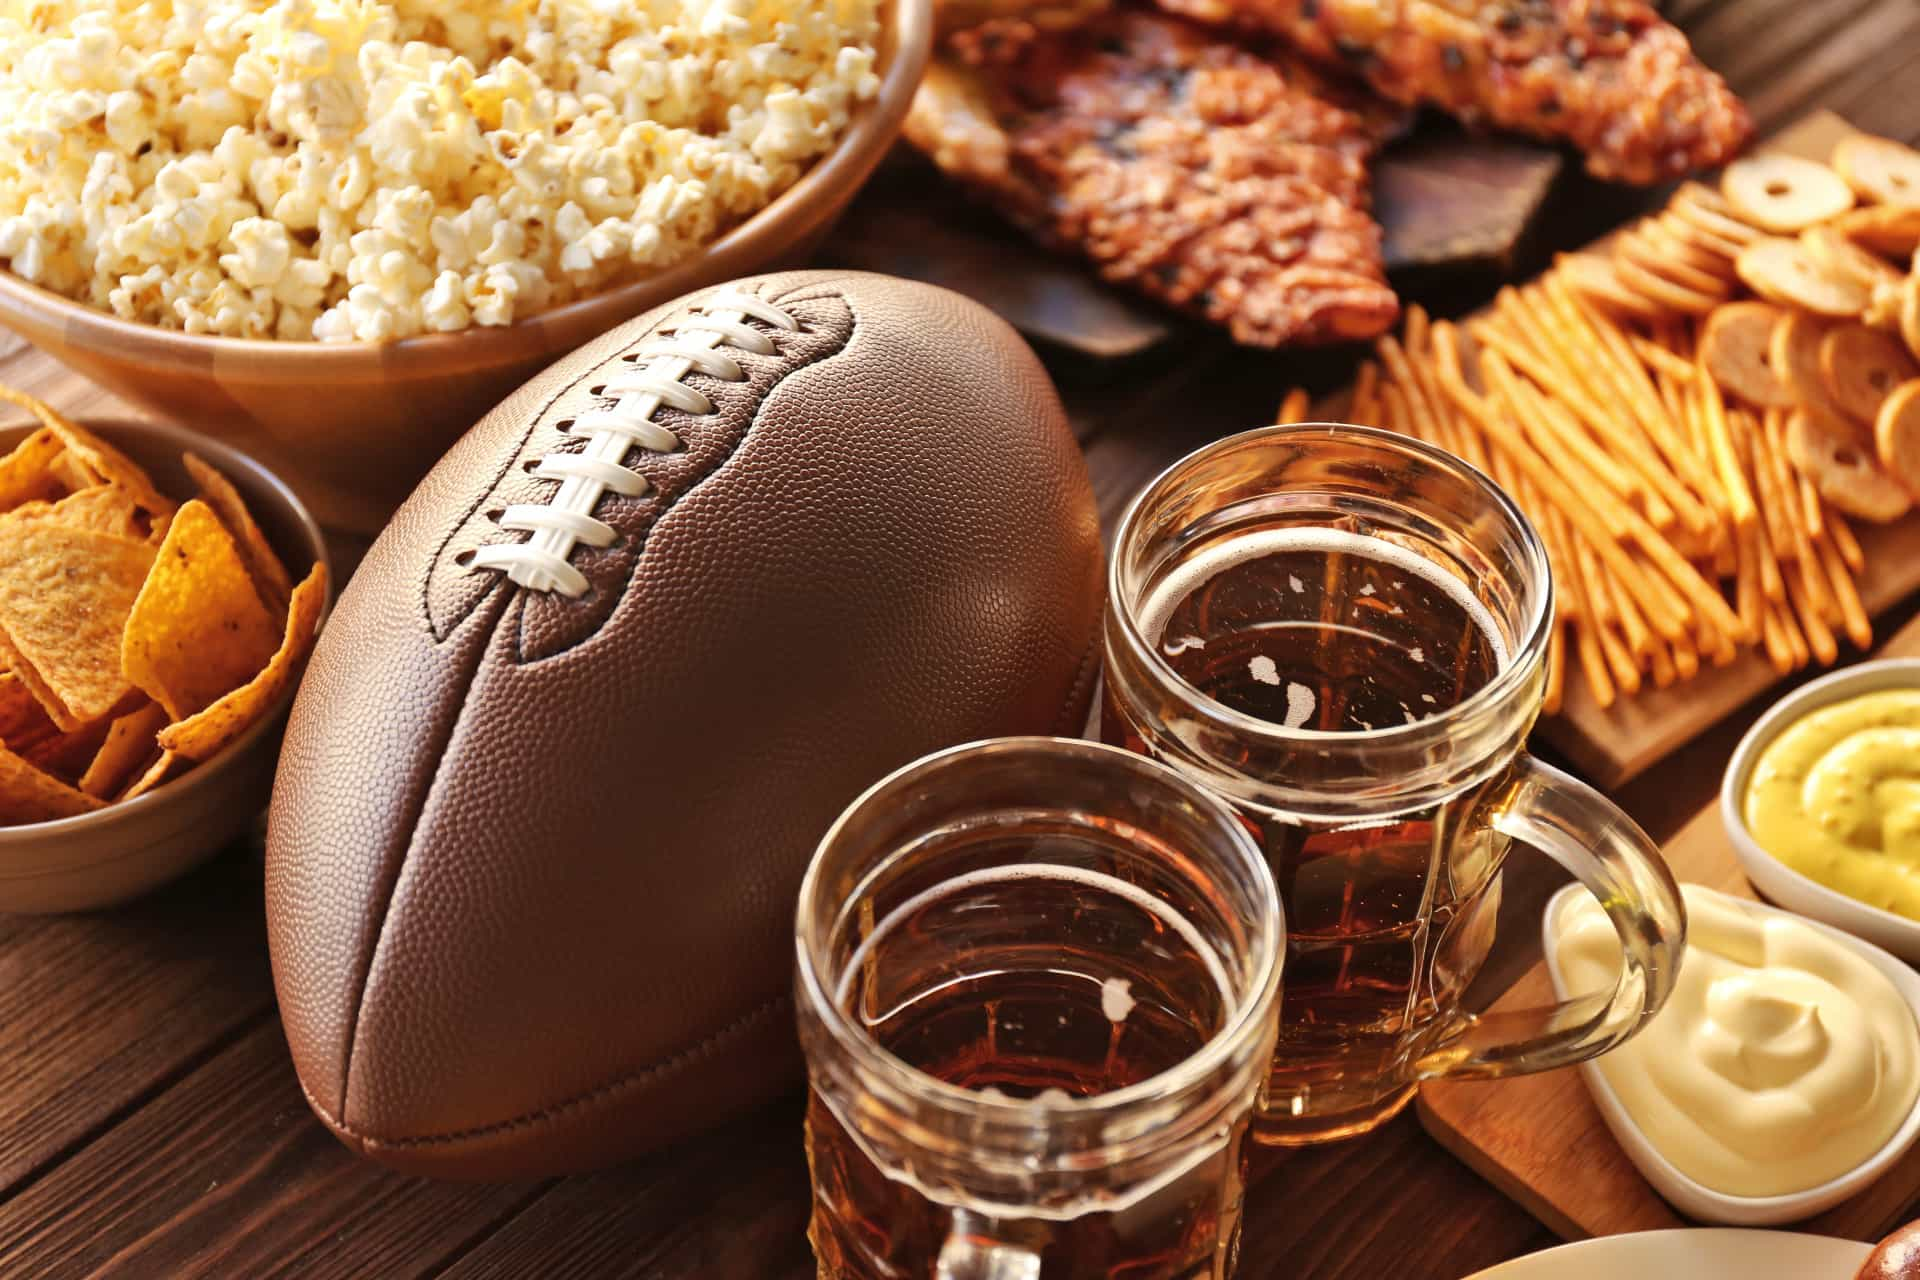 10 reasons to love the Super Bowl even if you don't like football